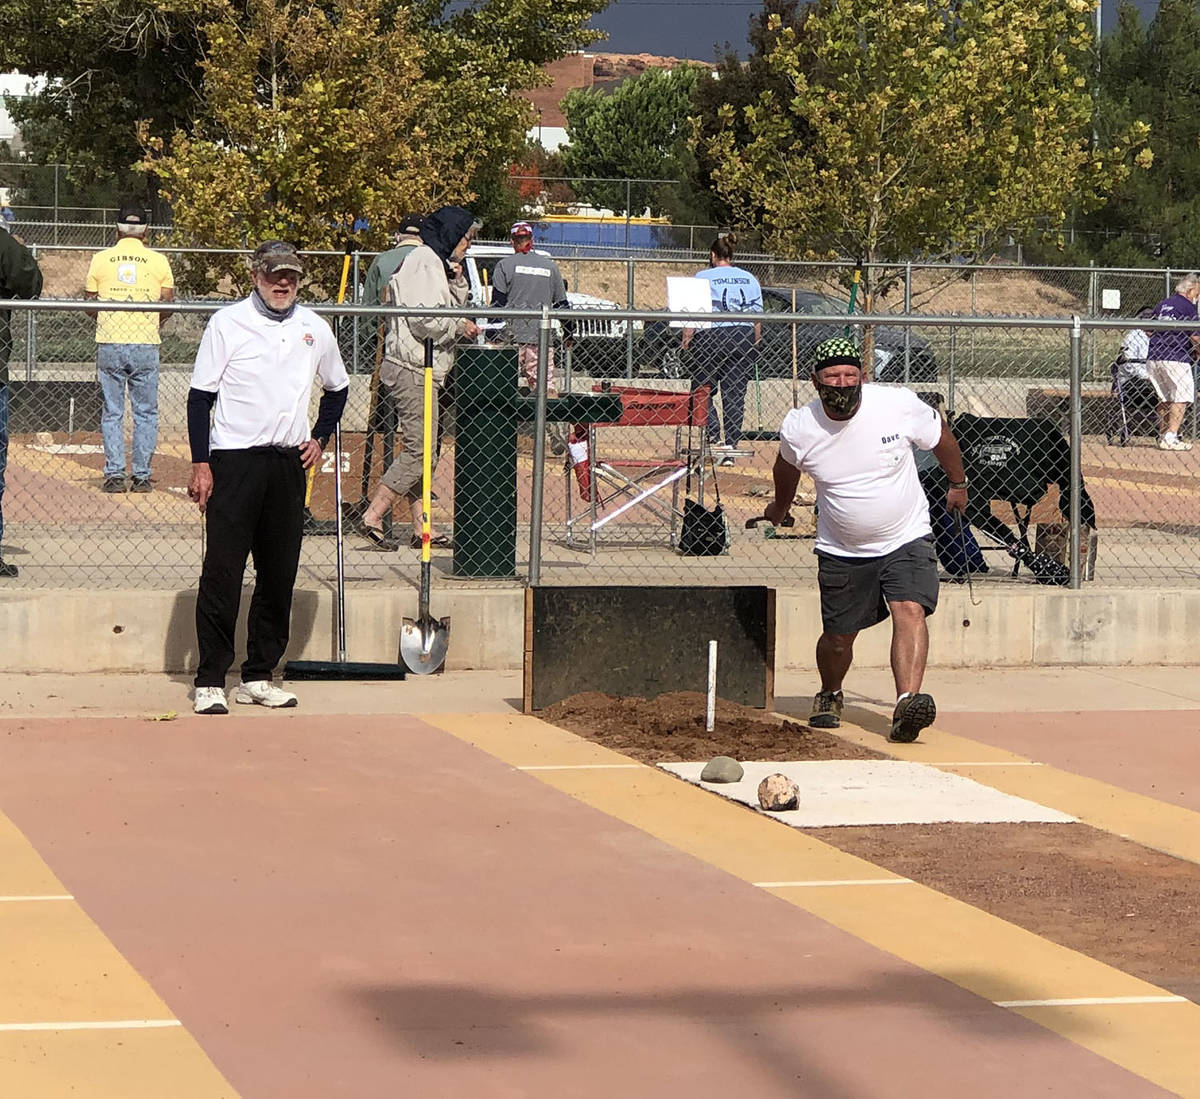 Tom Rysinski/Pahrump Valley Times Dave Barefield pitches a horseshoe during his game against Do ...